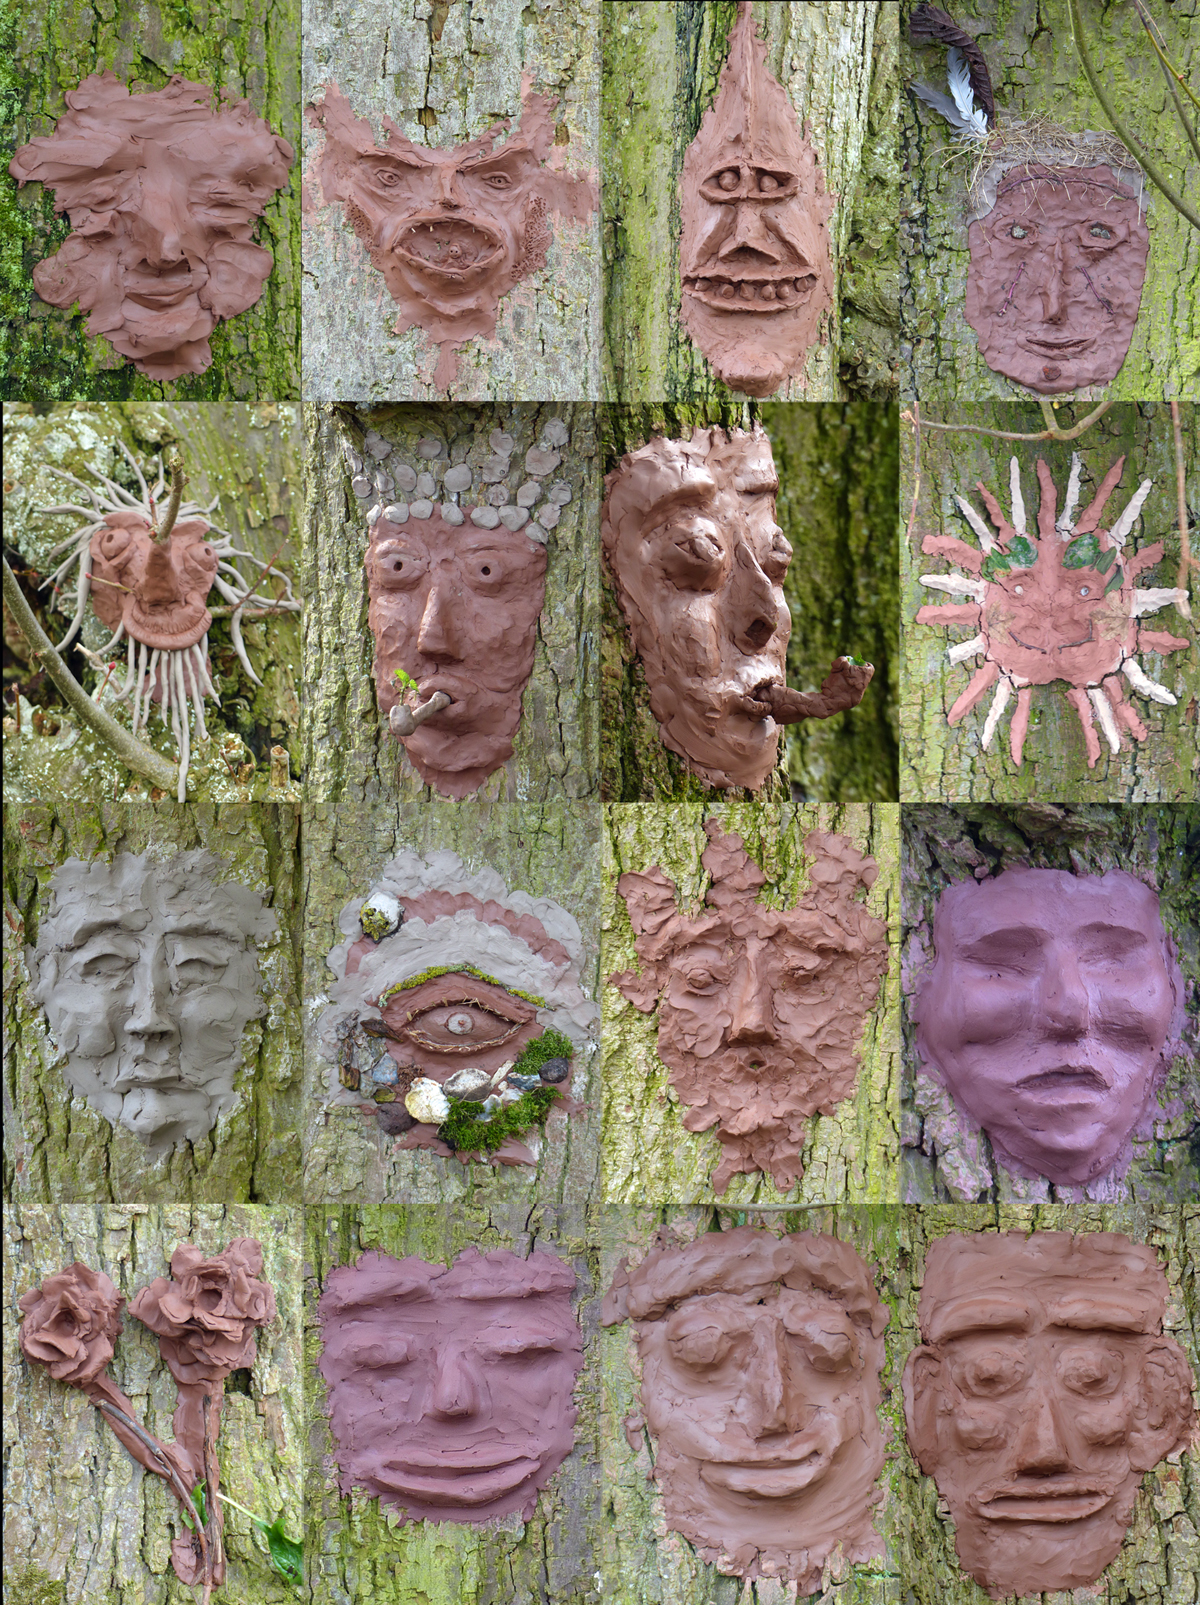 clay masks and designs on tree barks